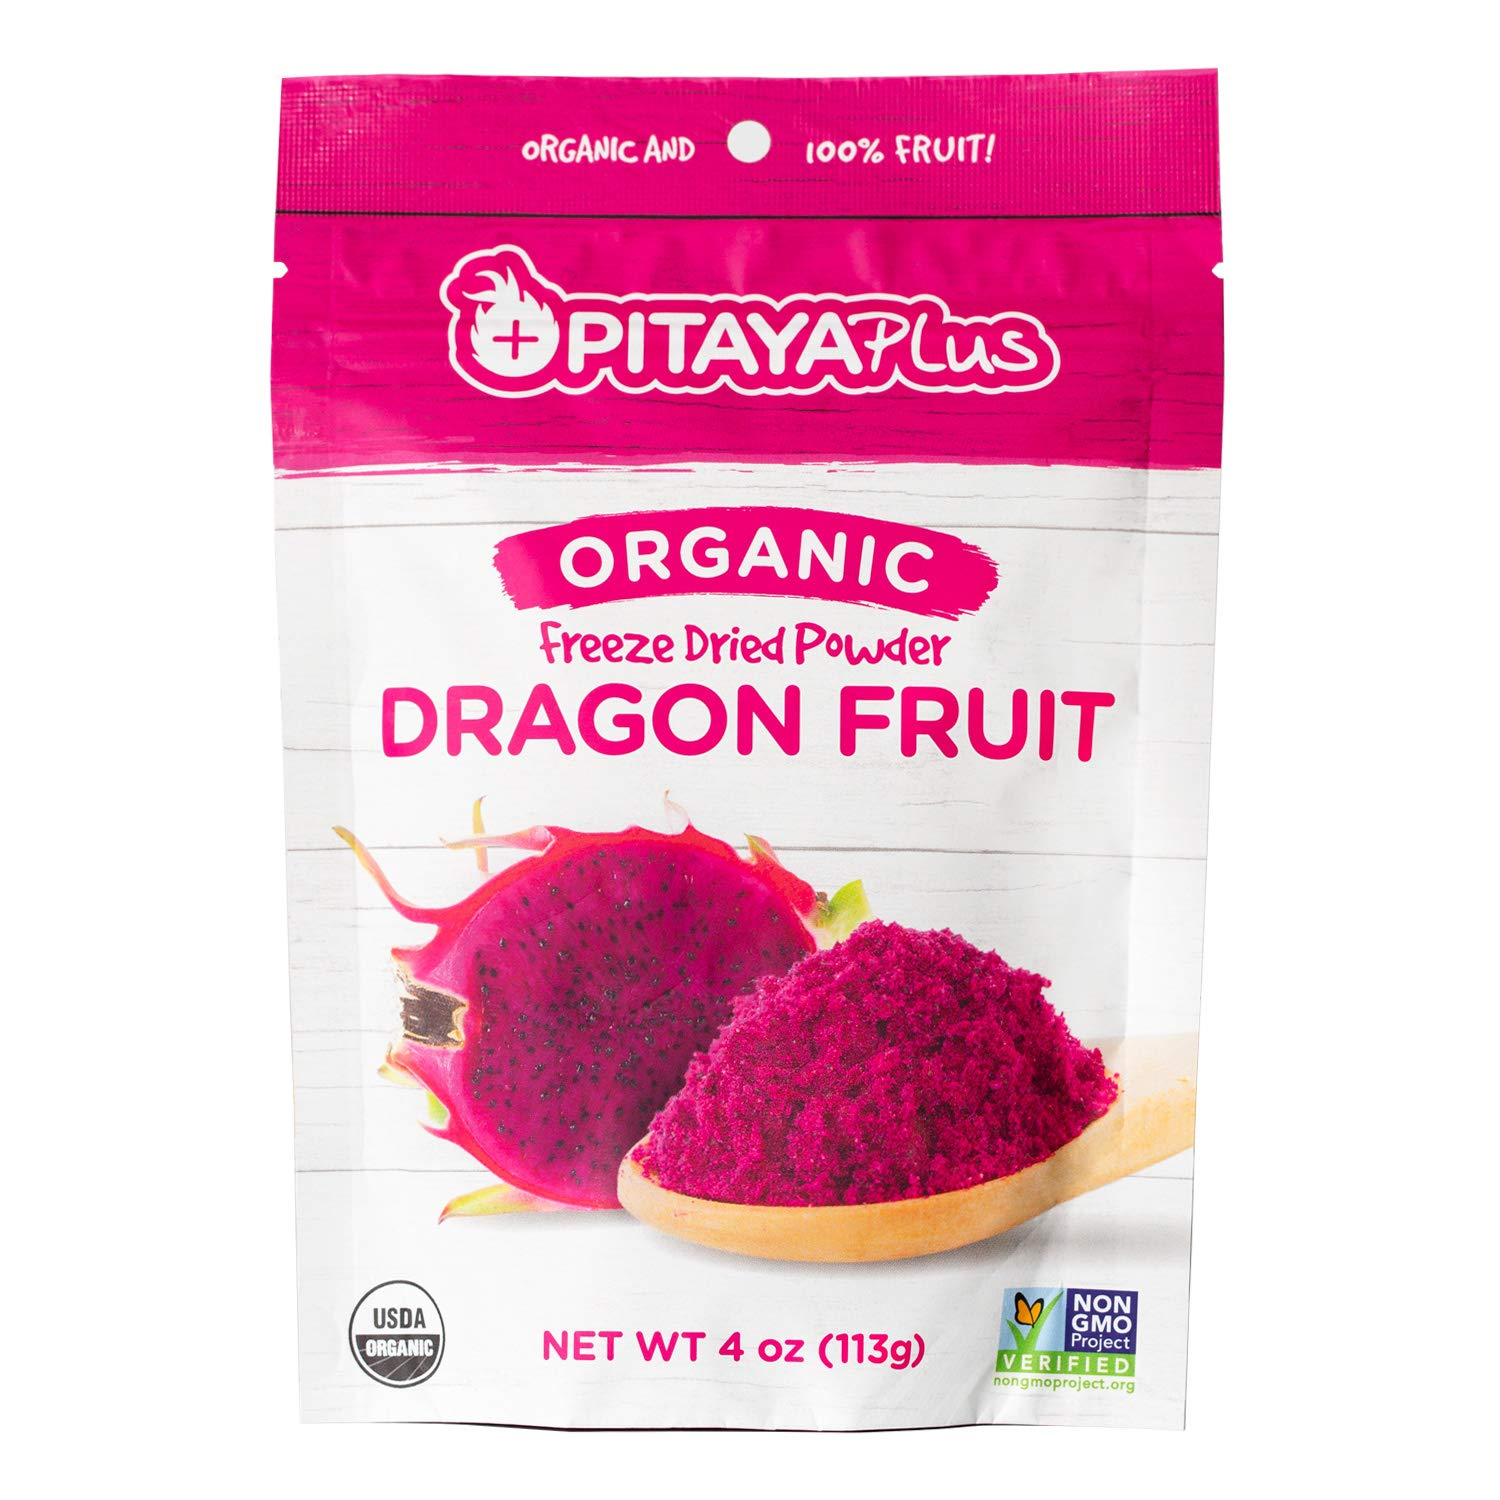 Pitaya Plus Freeze Dried Red Dragon Fruit Powder Organic. 4 Ounces of 100% Dragon Fruit for the Brightest Pink Rceipes. USDA and Oregon Tilth Organic, Non-GMO, Earth Kosher, Vegan Verified, B-Corp. by Pitaya Plus